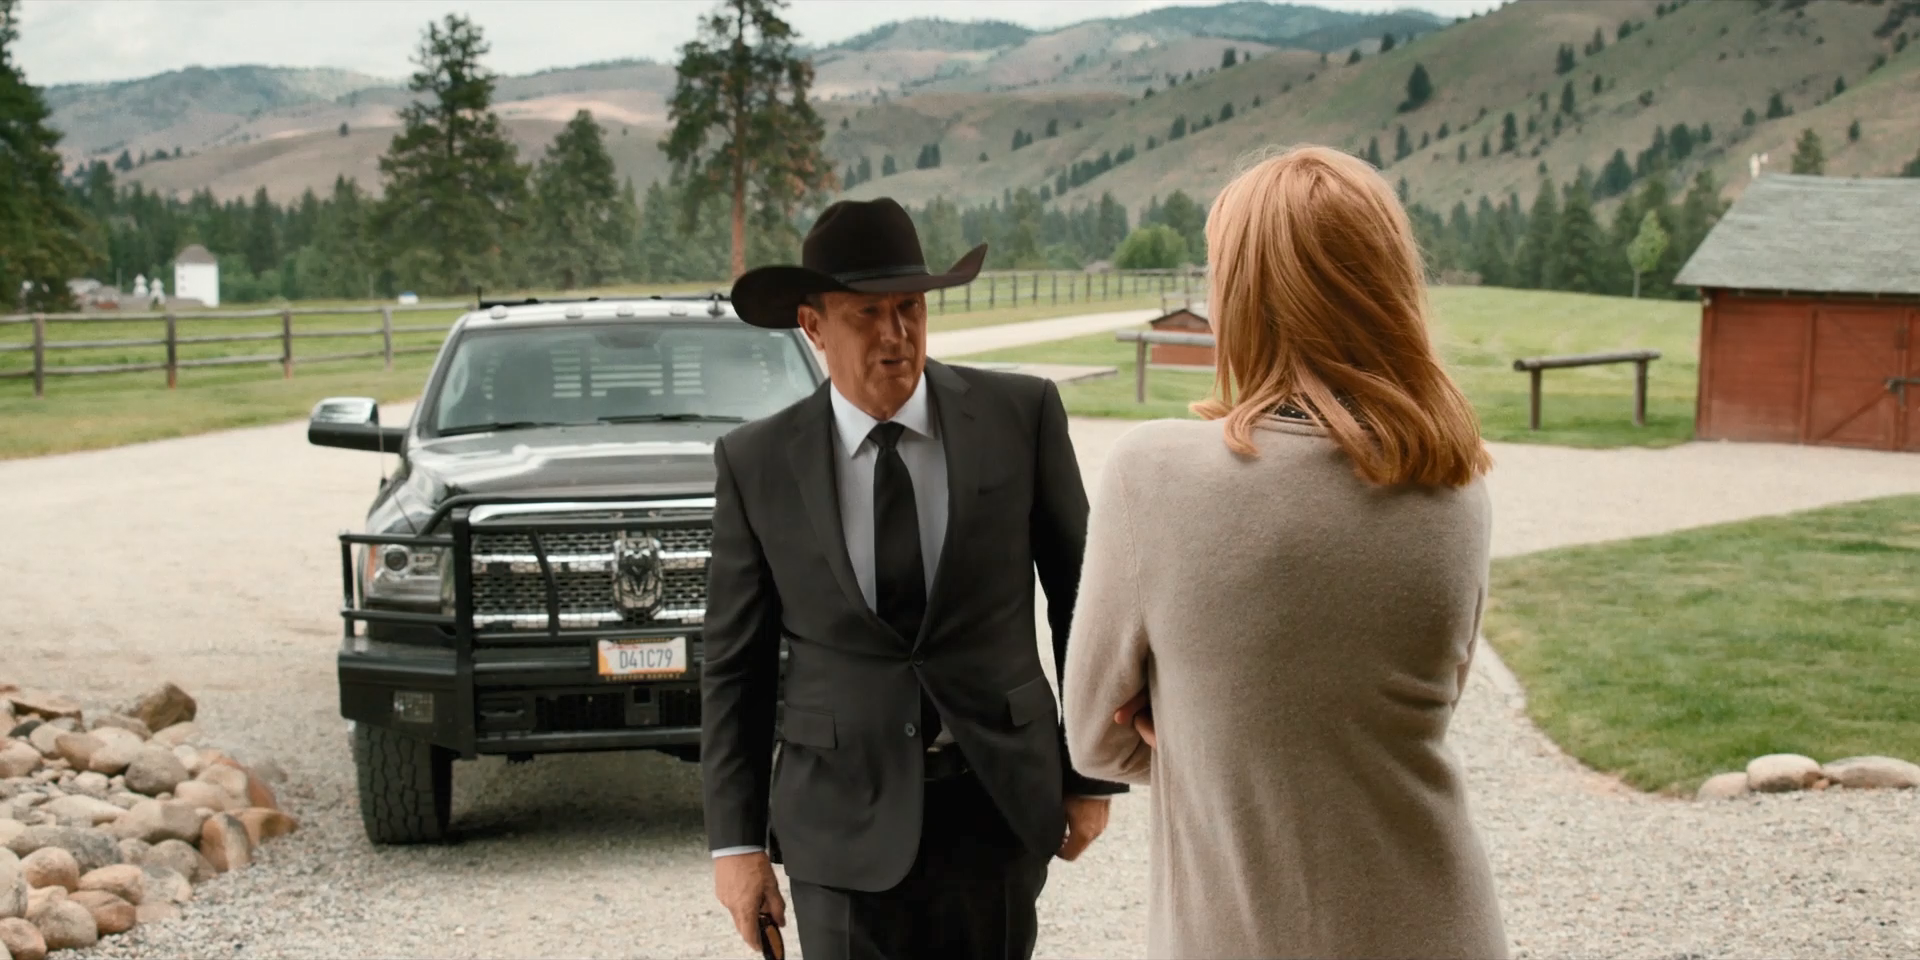 1080p_UHD Yellowstone.S03E01_ideafilm_Spin City33.mp4_snapshot_18.45.207.png